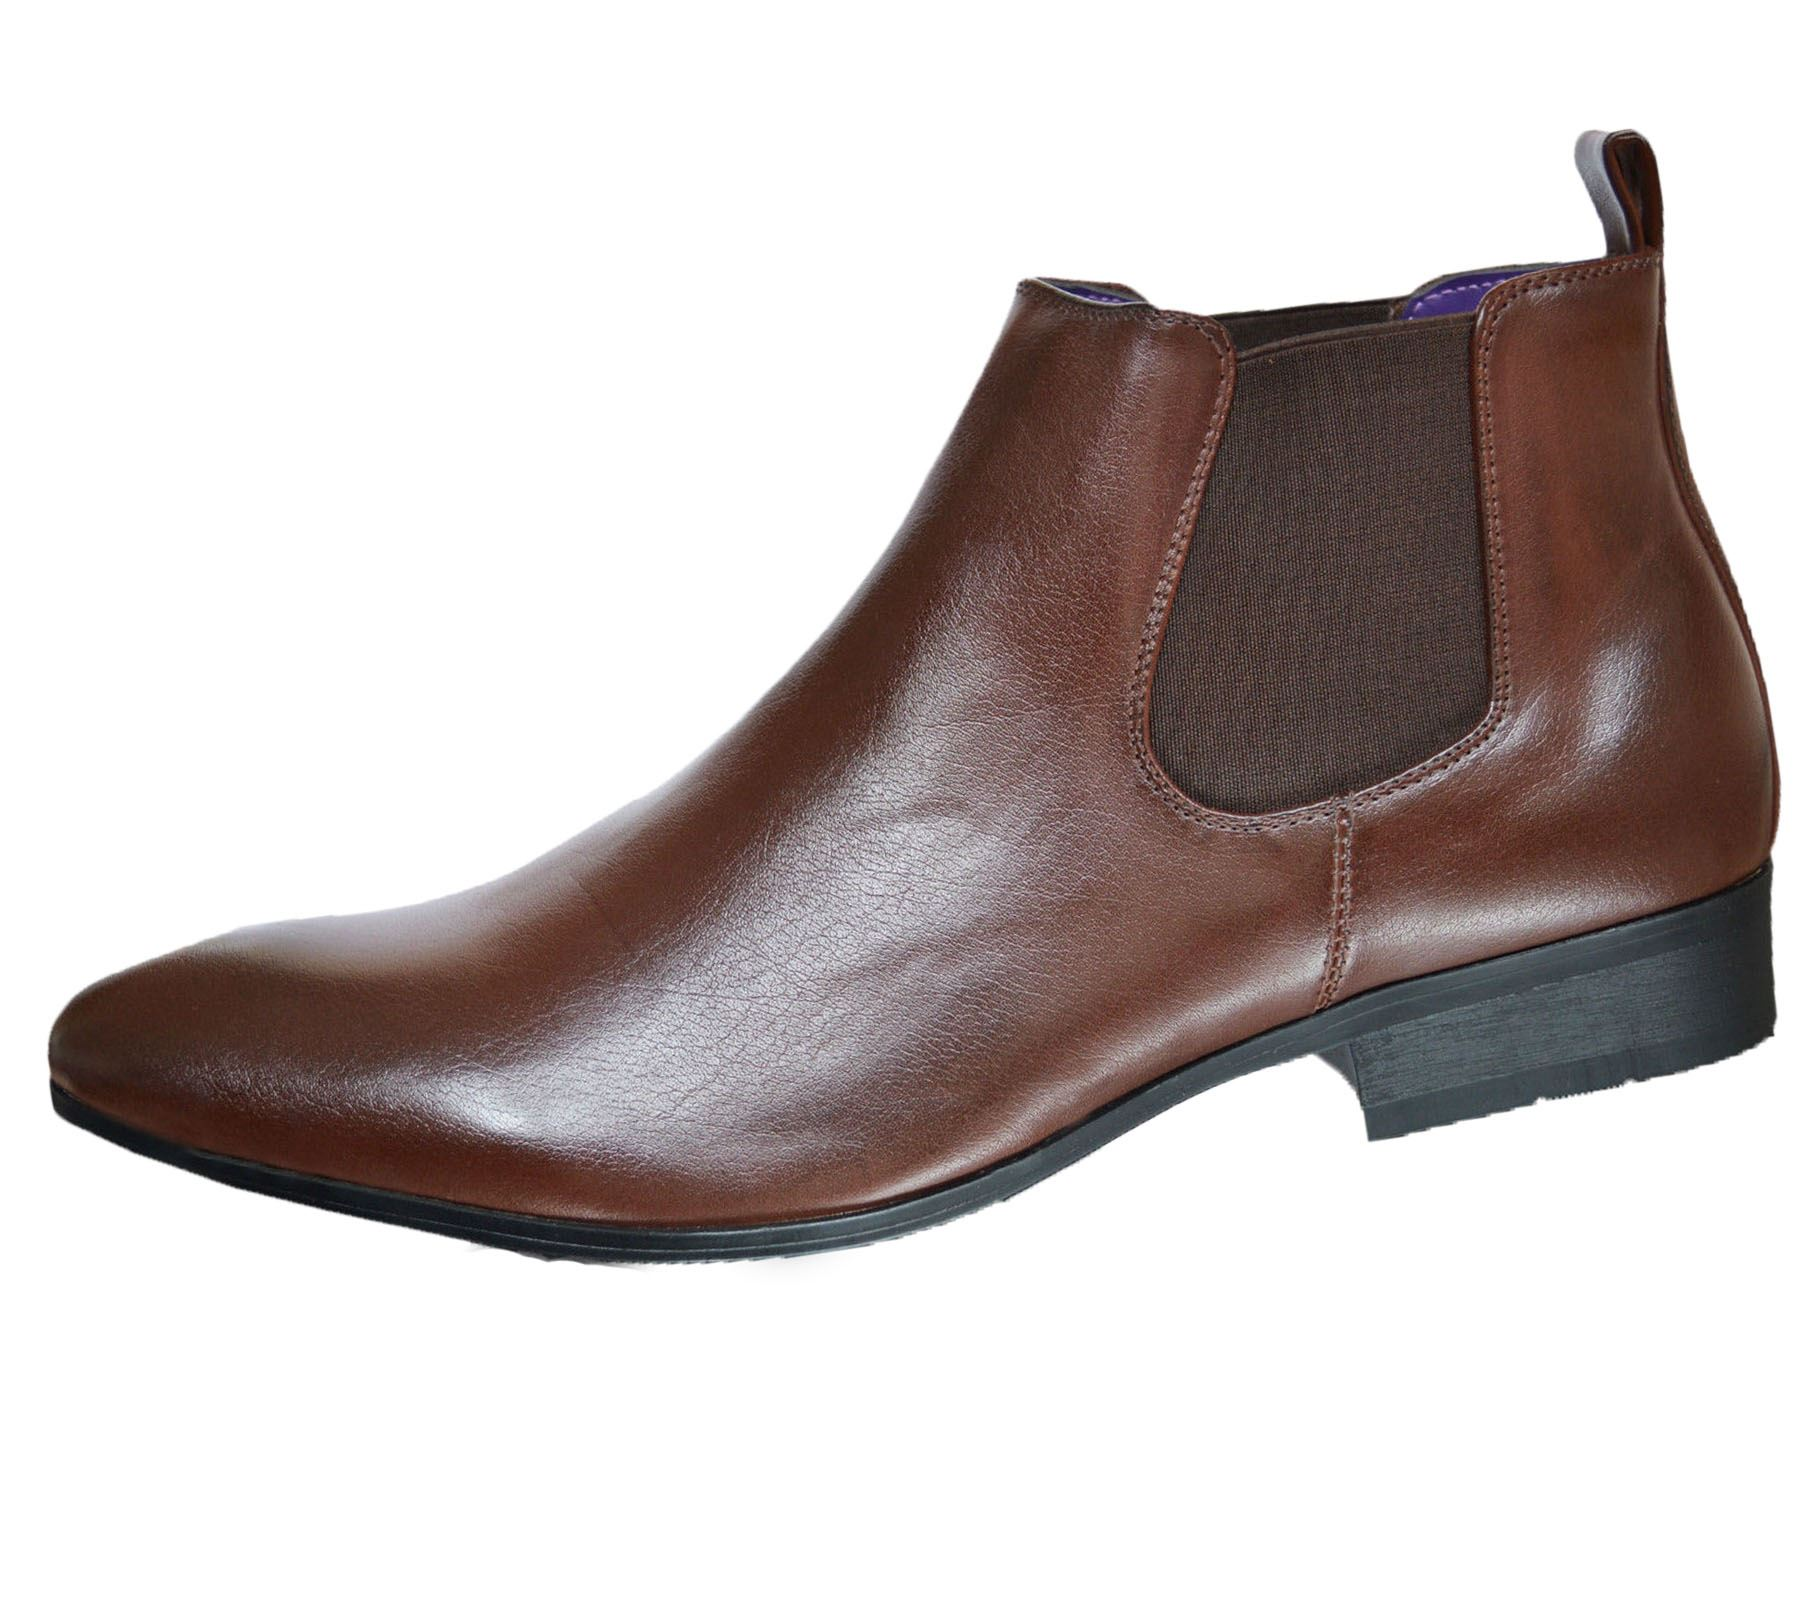 Mens-Chelsea-Boots-High-Top-Gusset-Synthetic-Leather-Shoes thumbnail 10